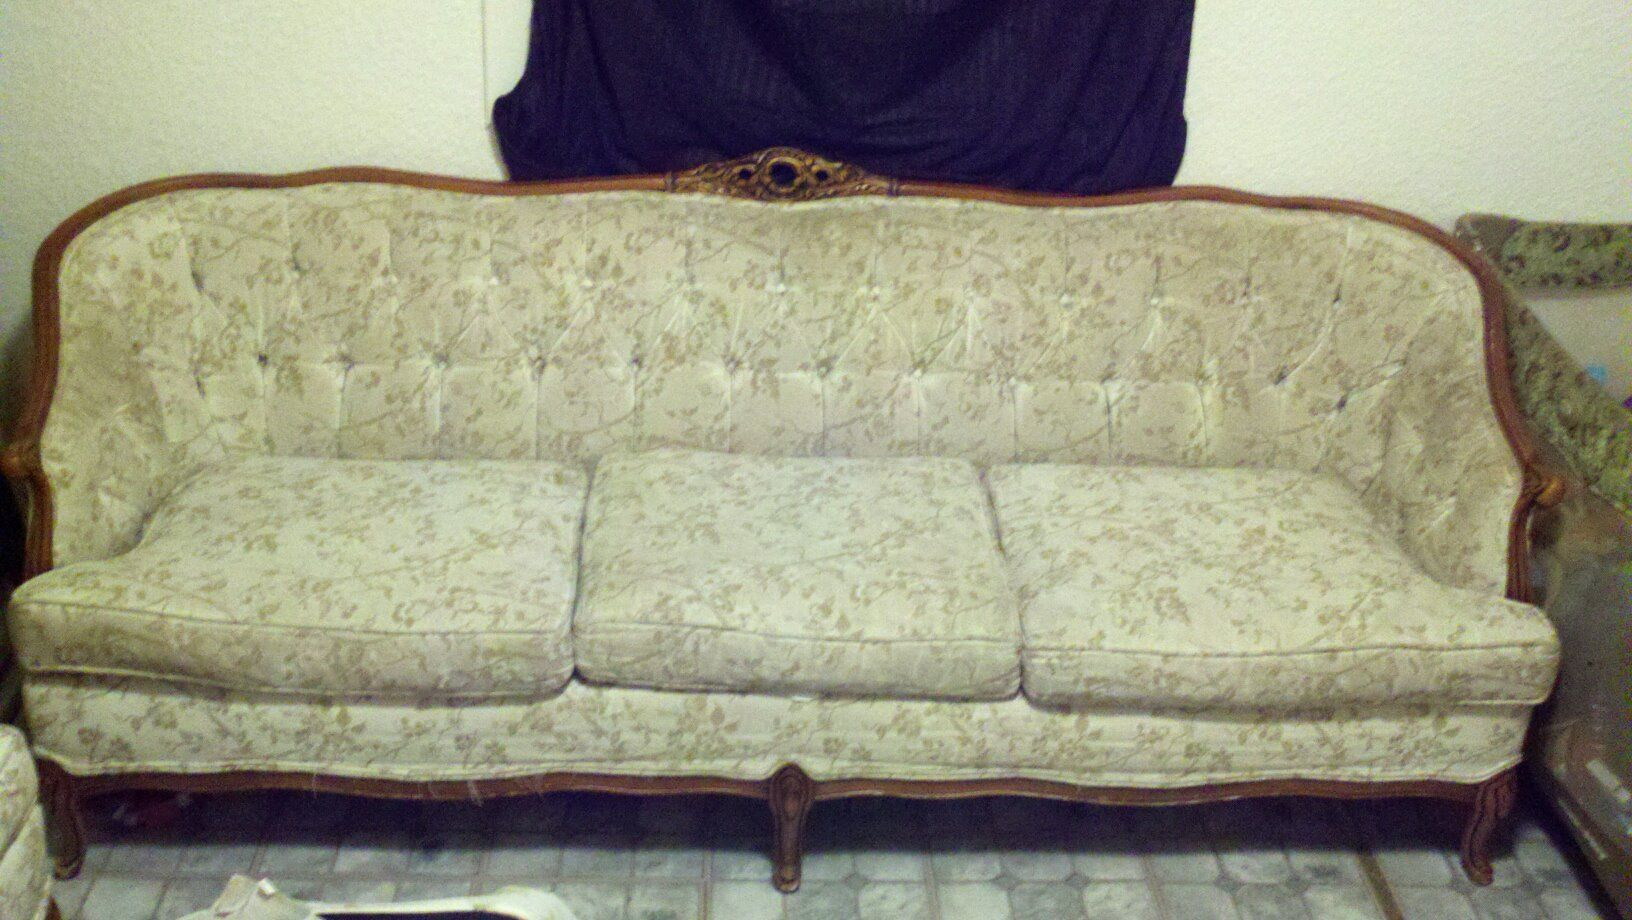 The couch i want to reupholster antique stuff i love pinterest Reupholster loveseat